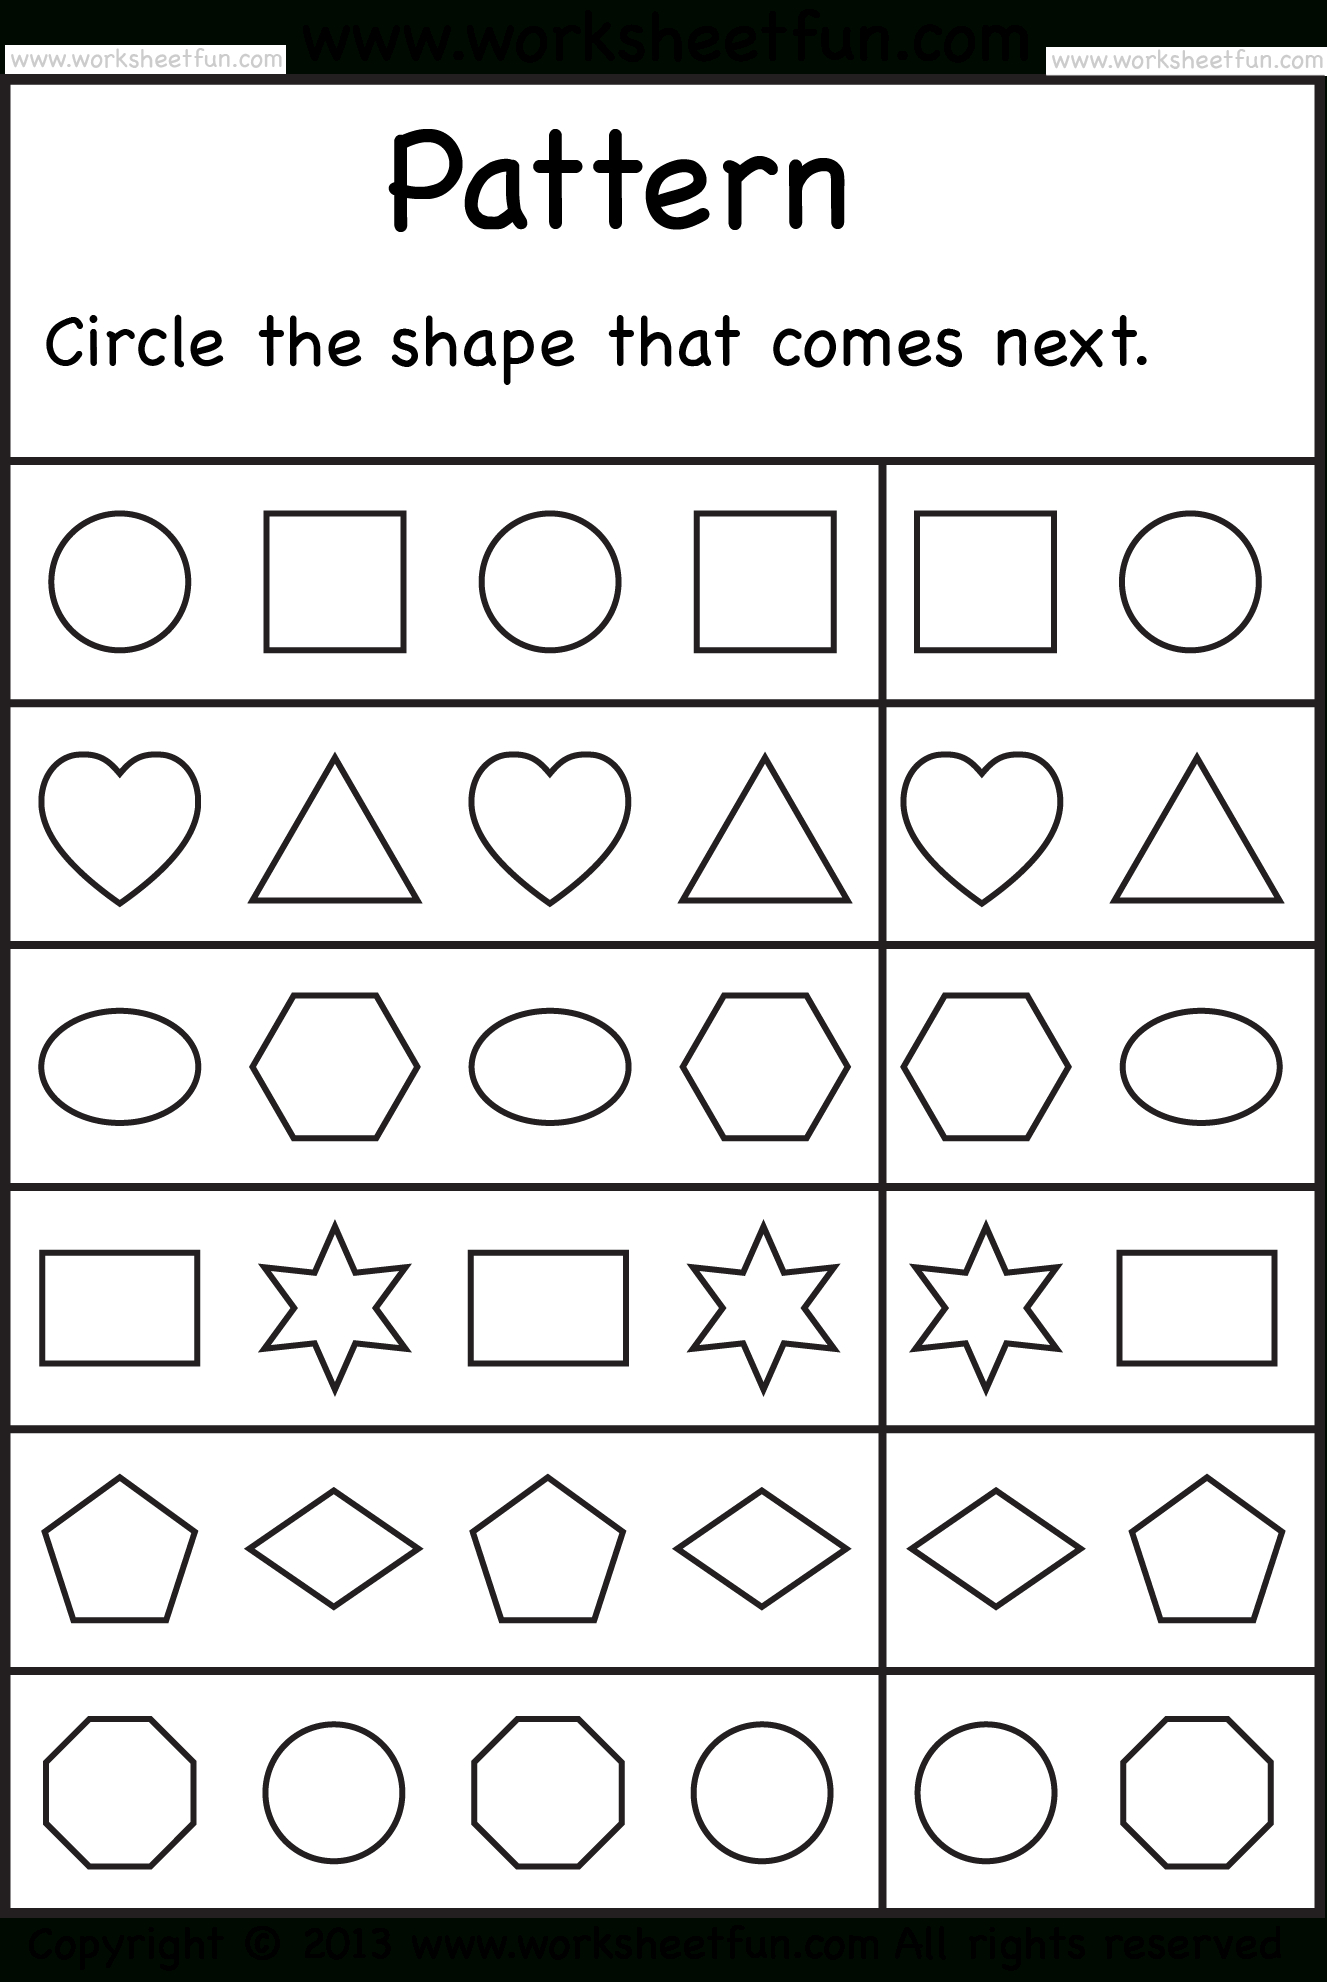 Free Printable Worksheets – Worksheetfun / Free Printable | Free Printable A Worksheets